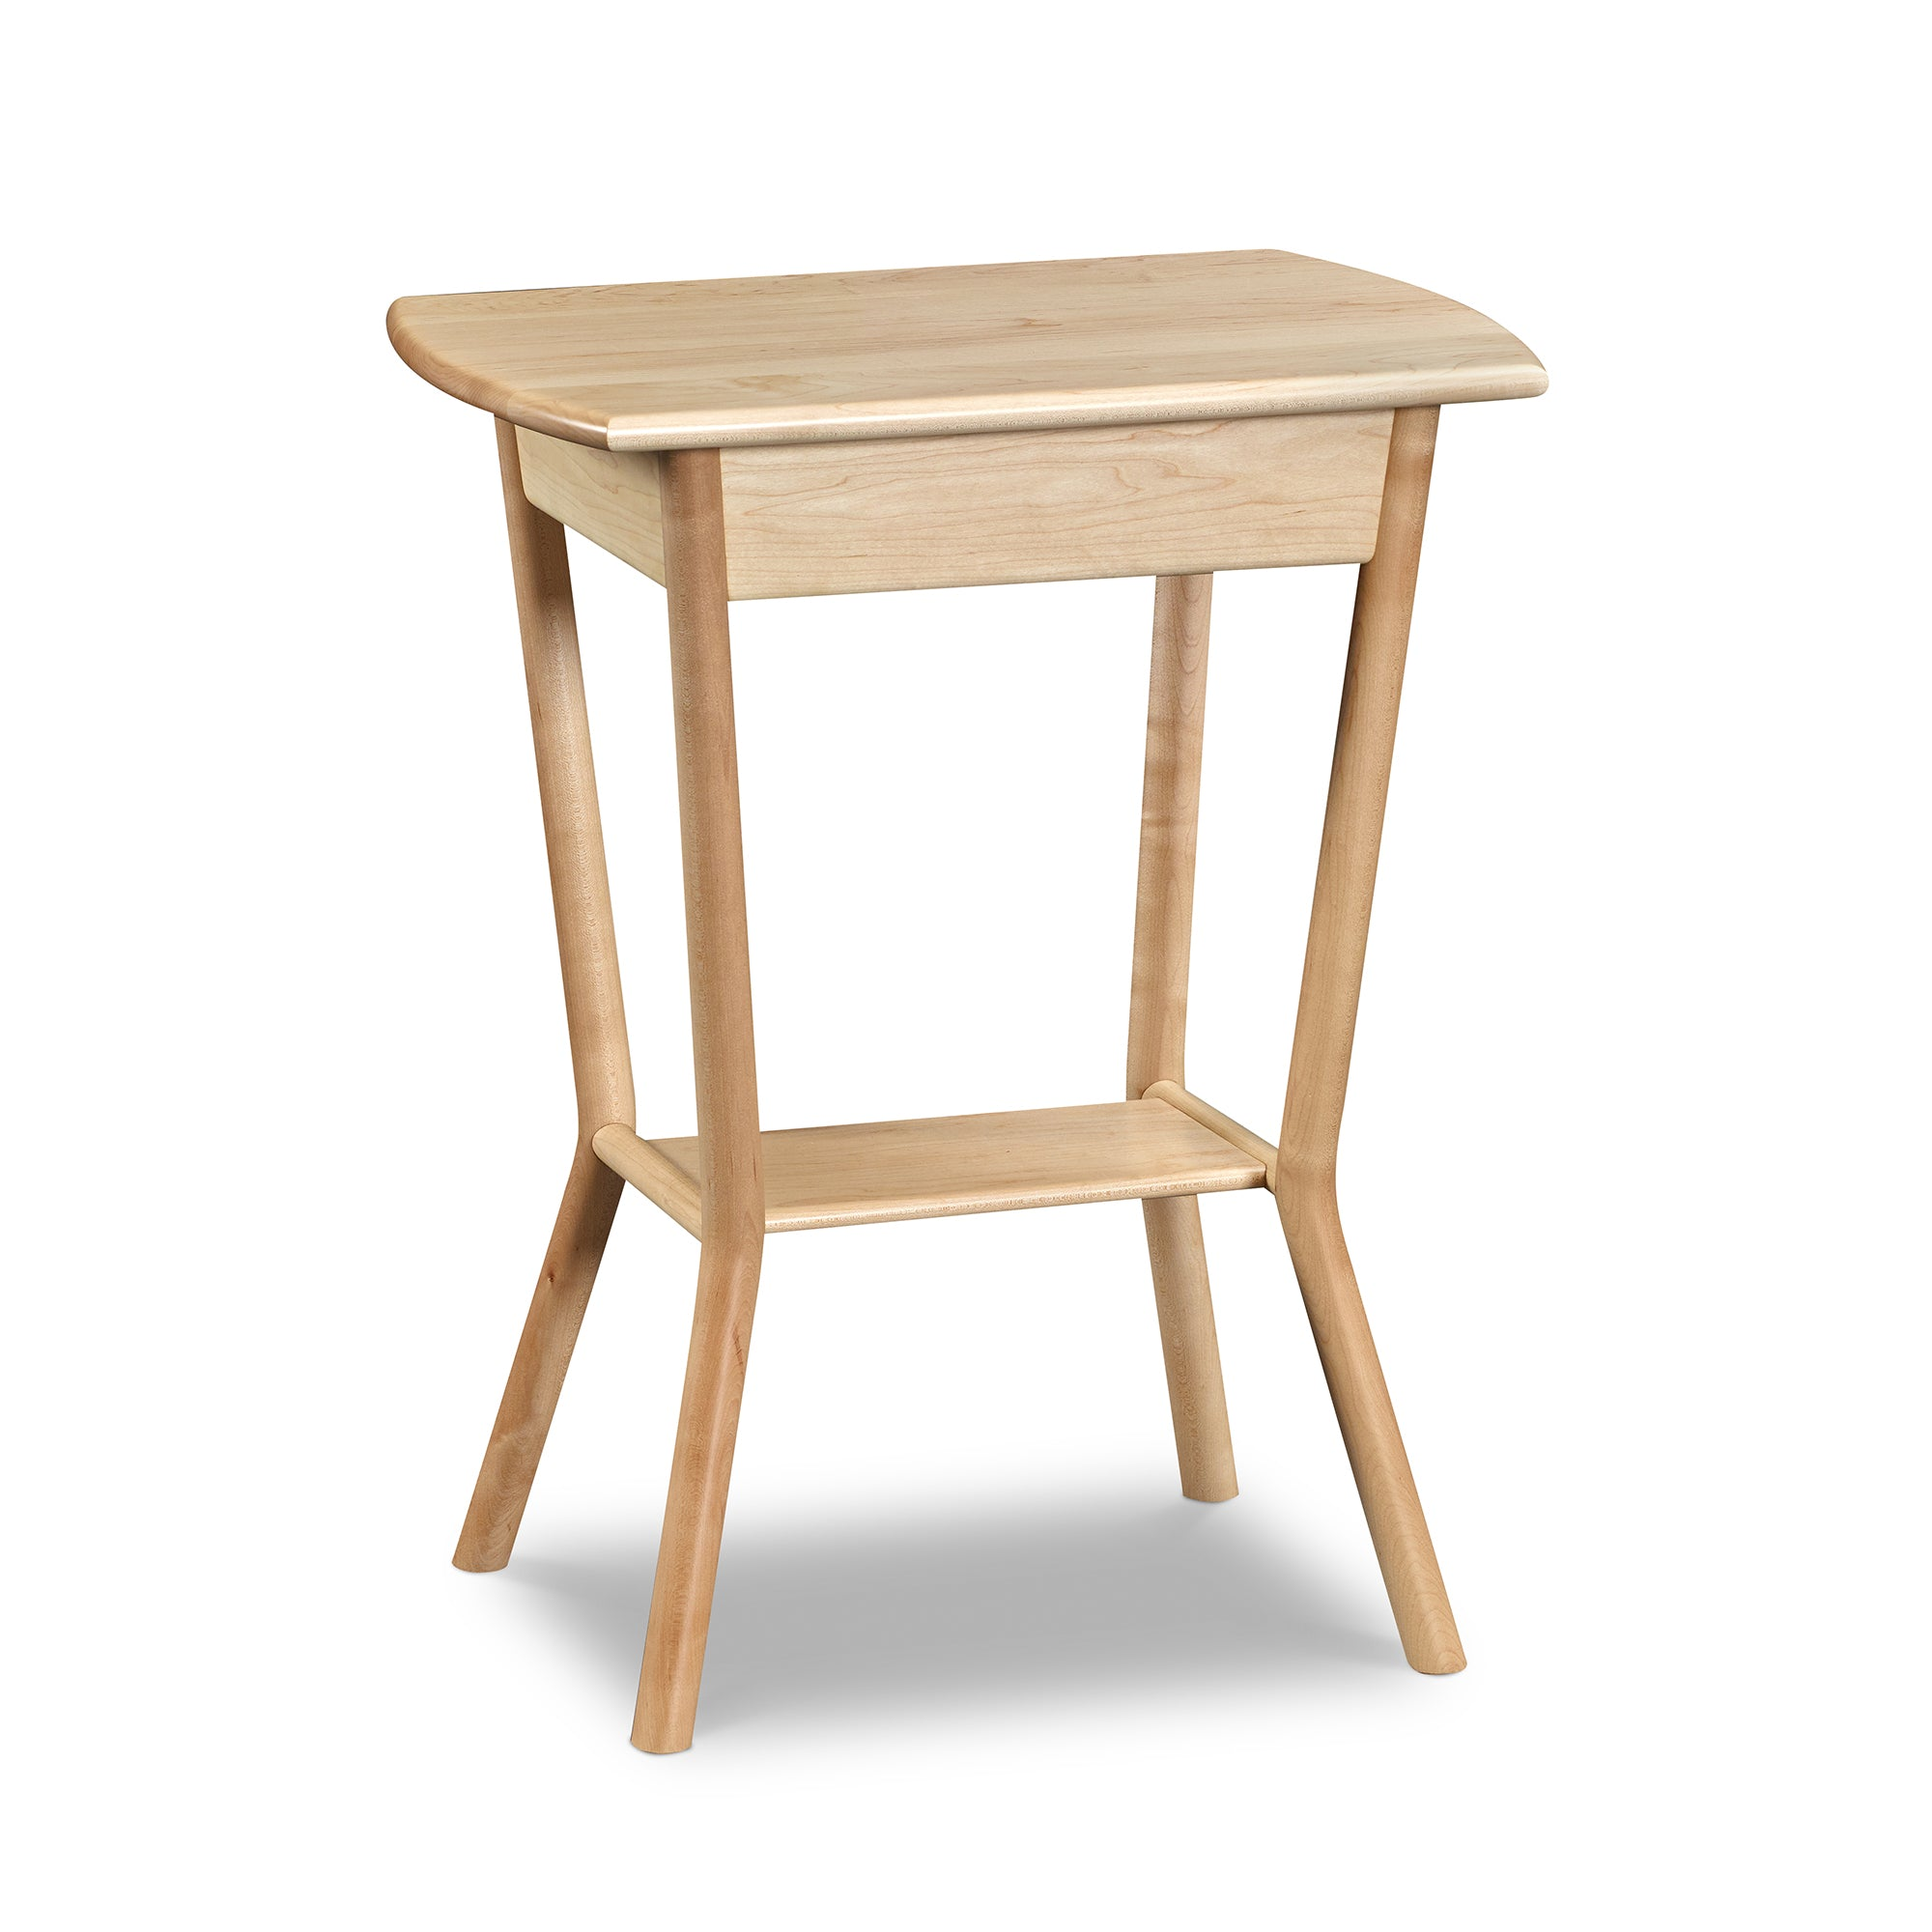 Mid-century modern Marker Side Table in solid maple wood with bent legs and low shelf